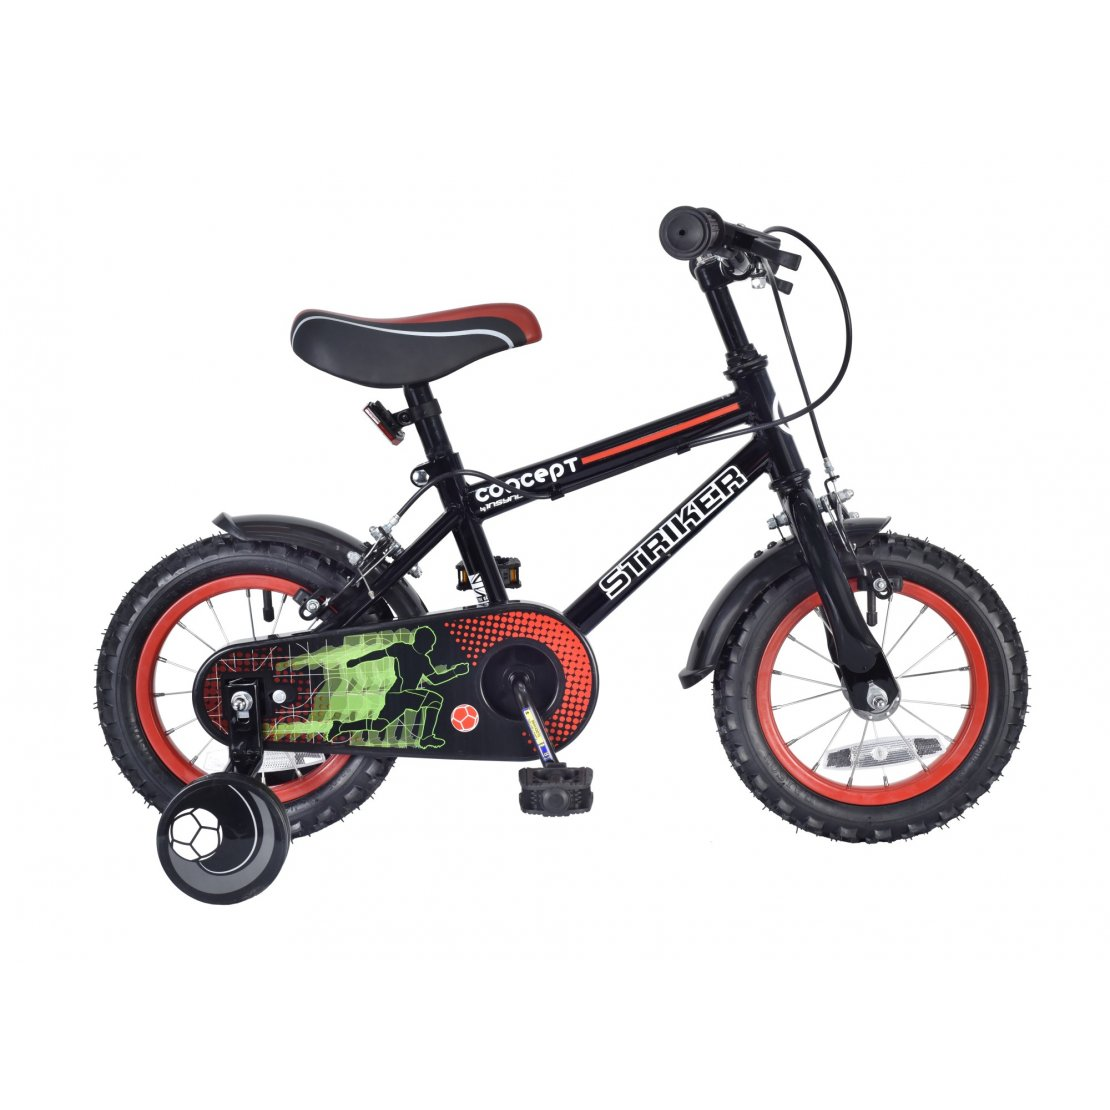 "Concept Striker 12"" Wheel Boys Bicycle"